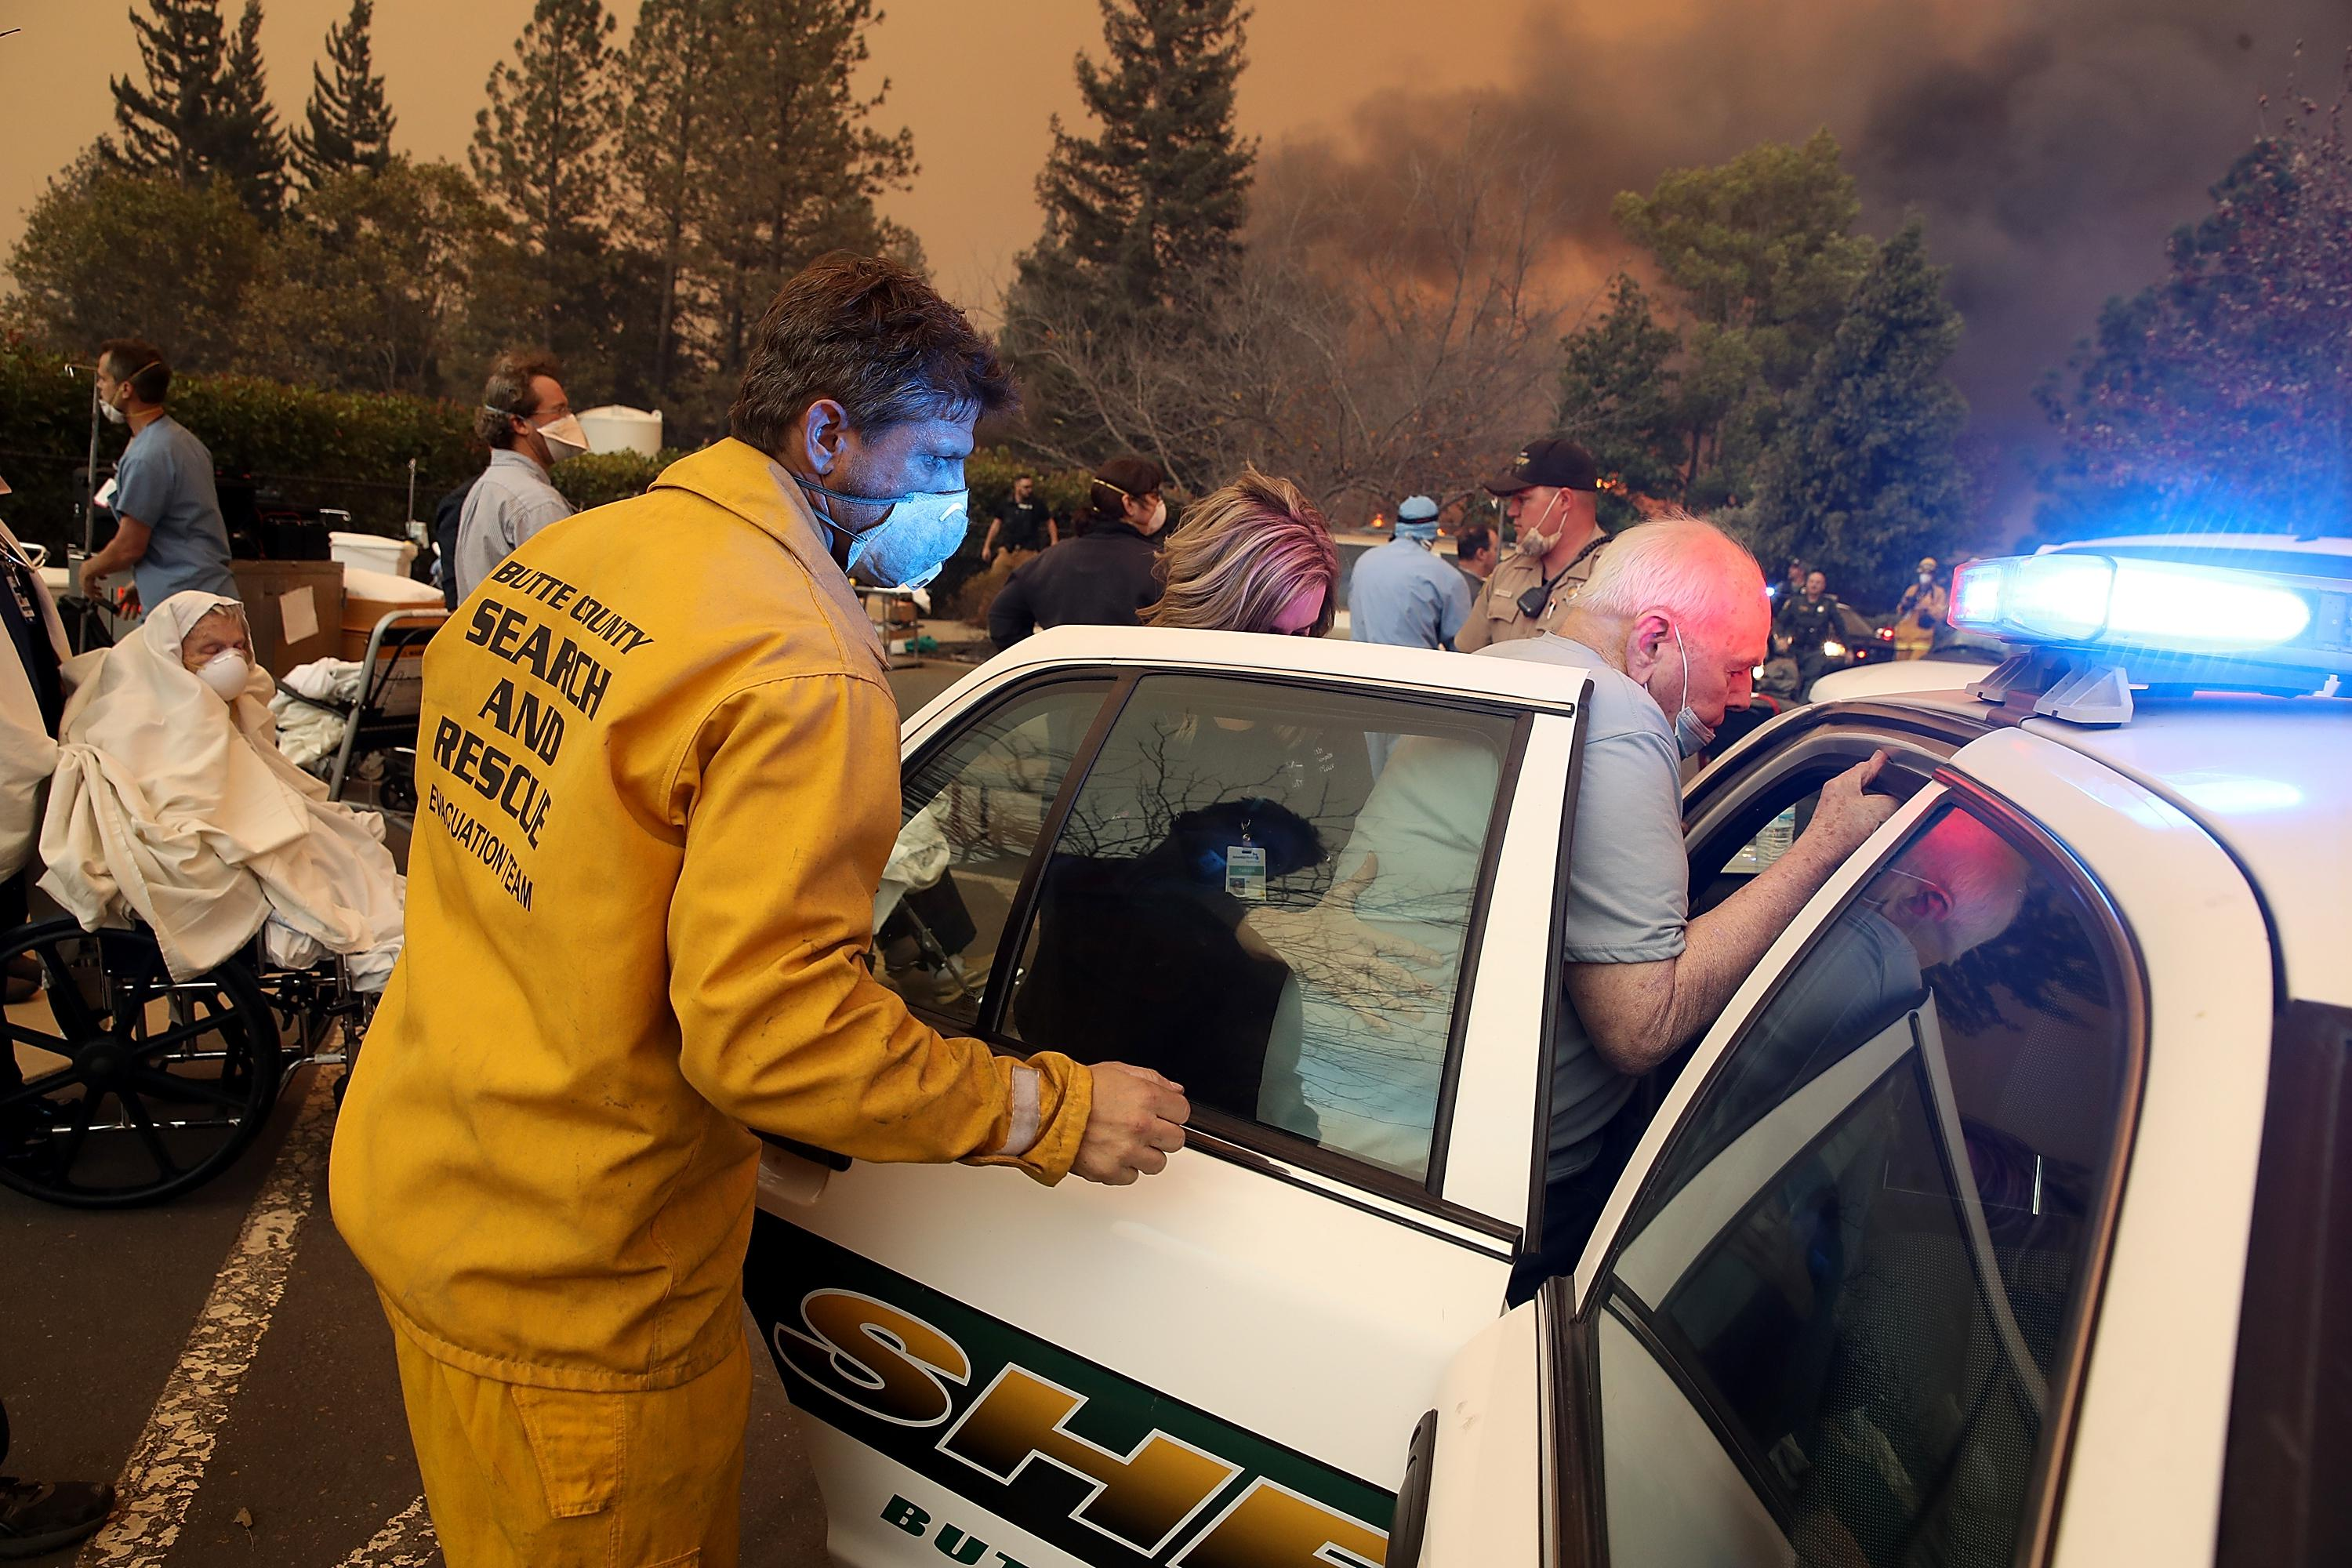 Hospital workers and first responders evacuating patients in a parking lot, with smoke in the background.